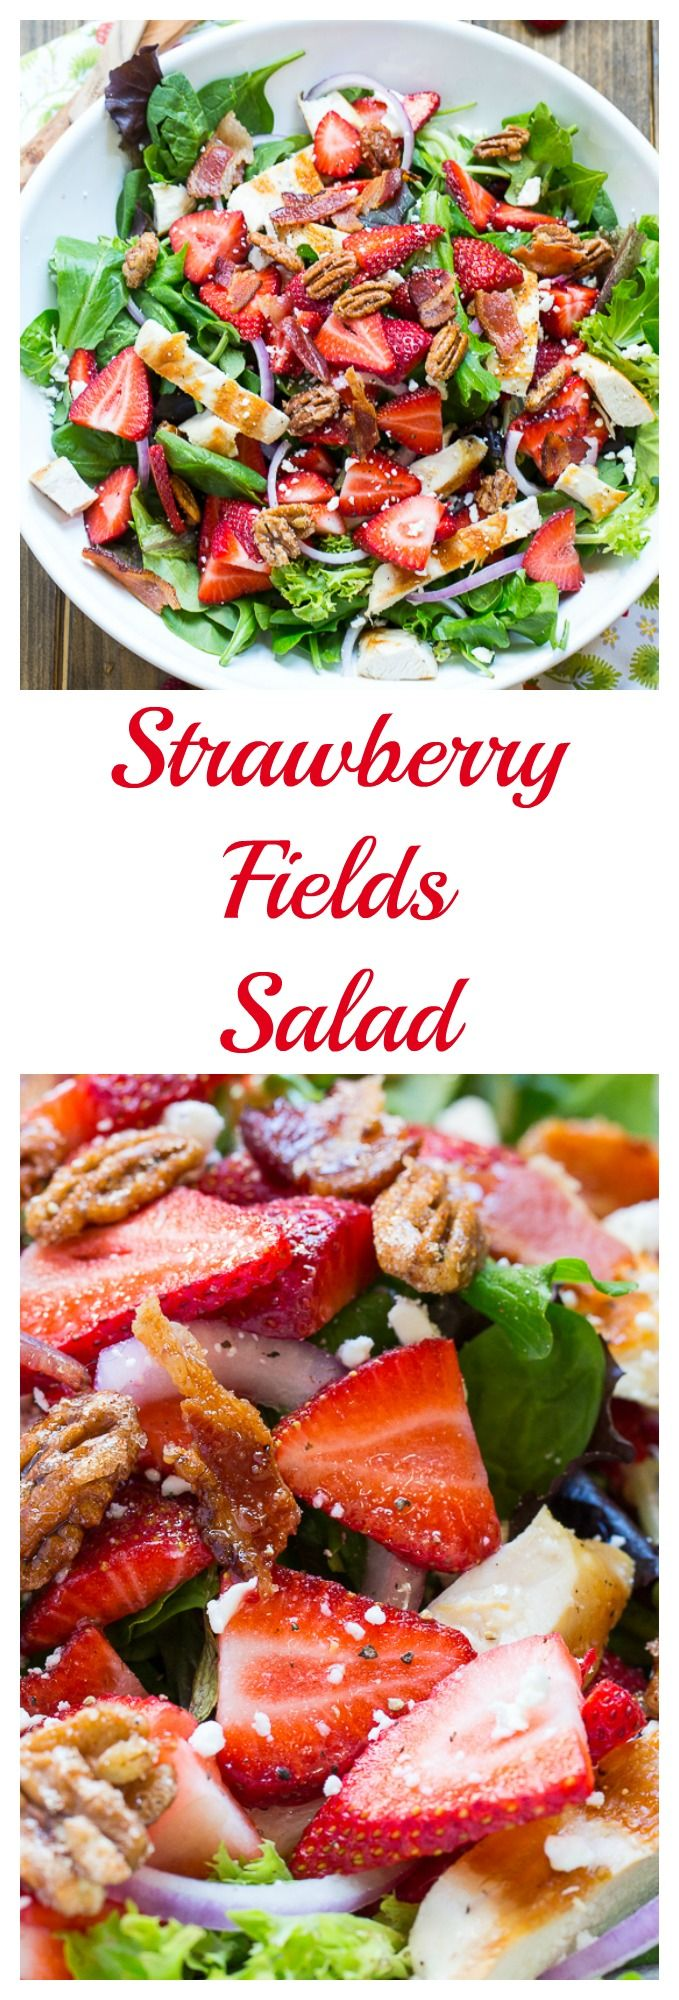 Strawberry Fields Salad with bacon, feta cheese, glazed pecans, and grilled chicken.